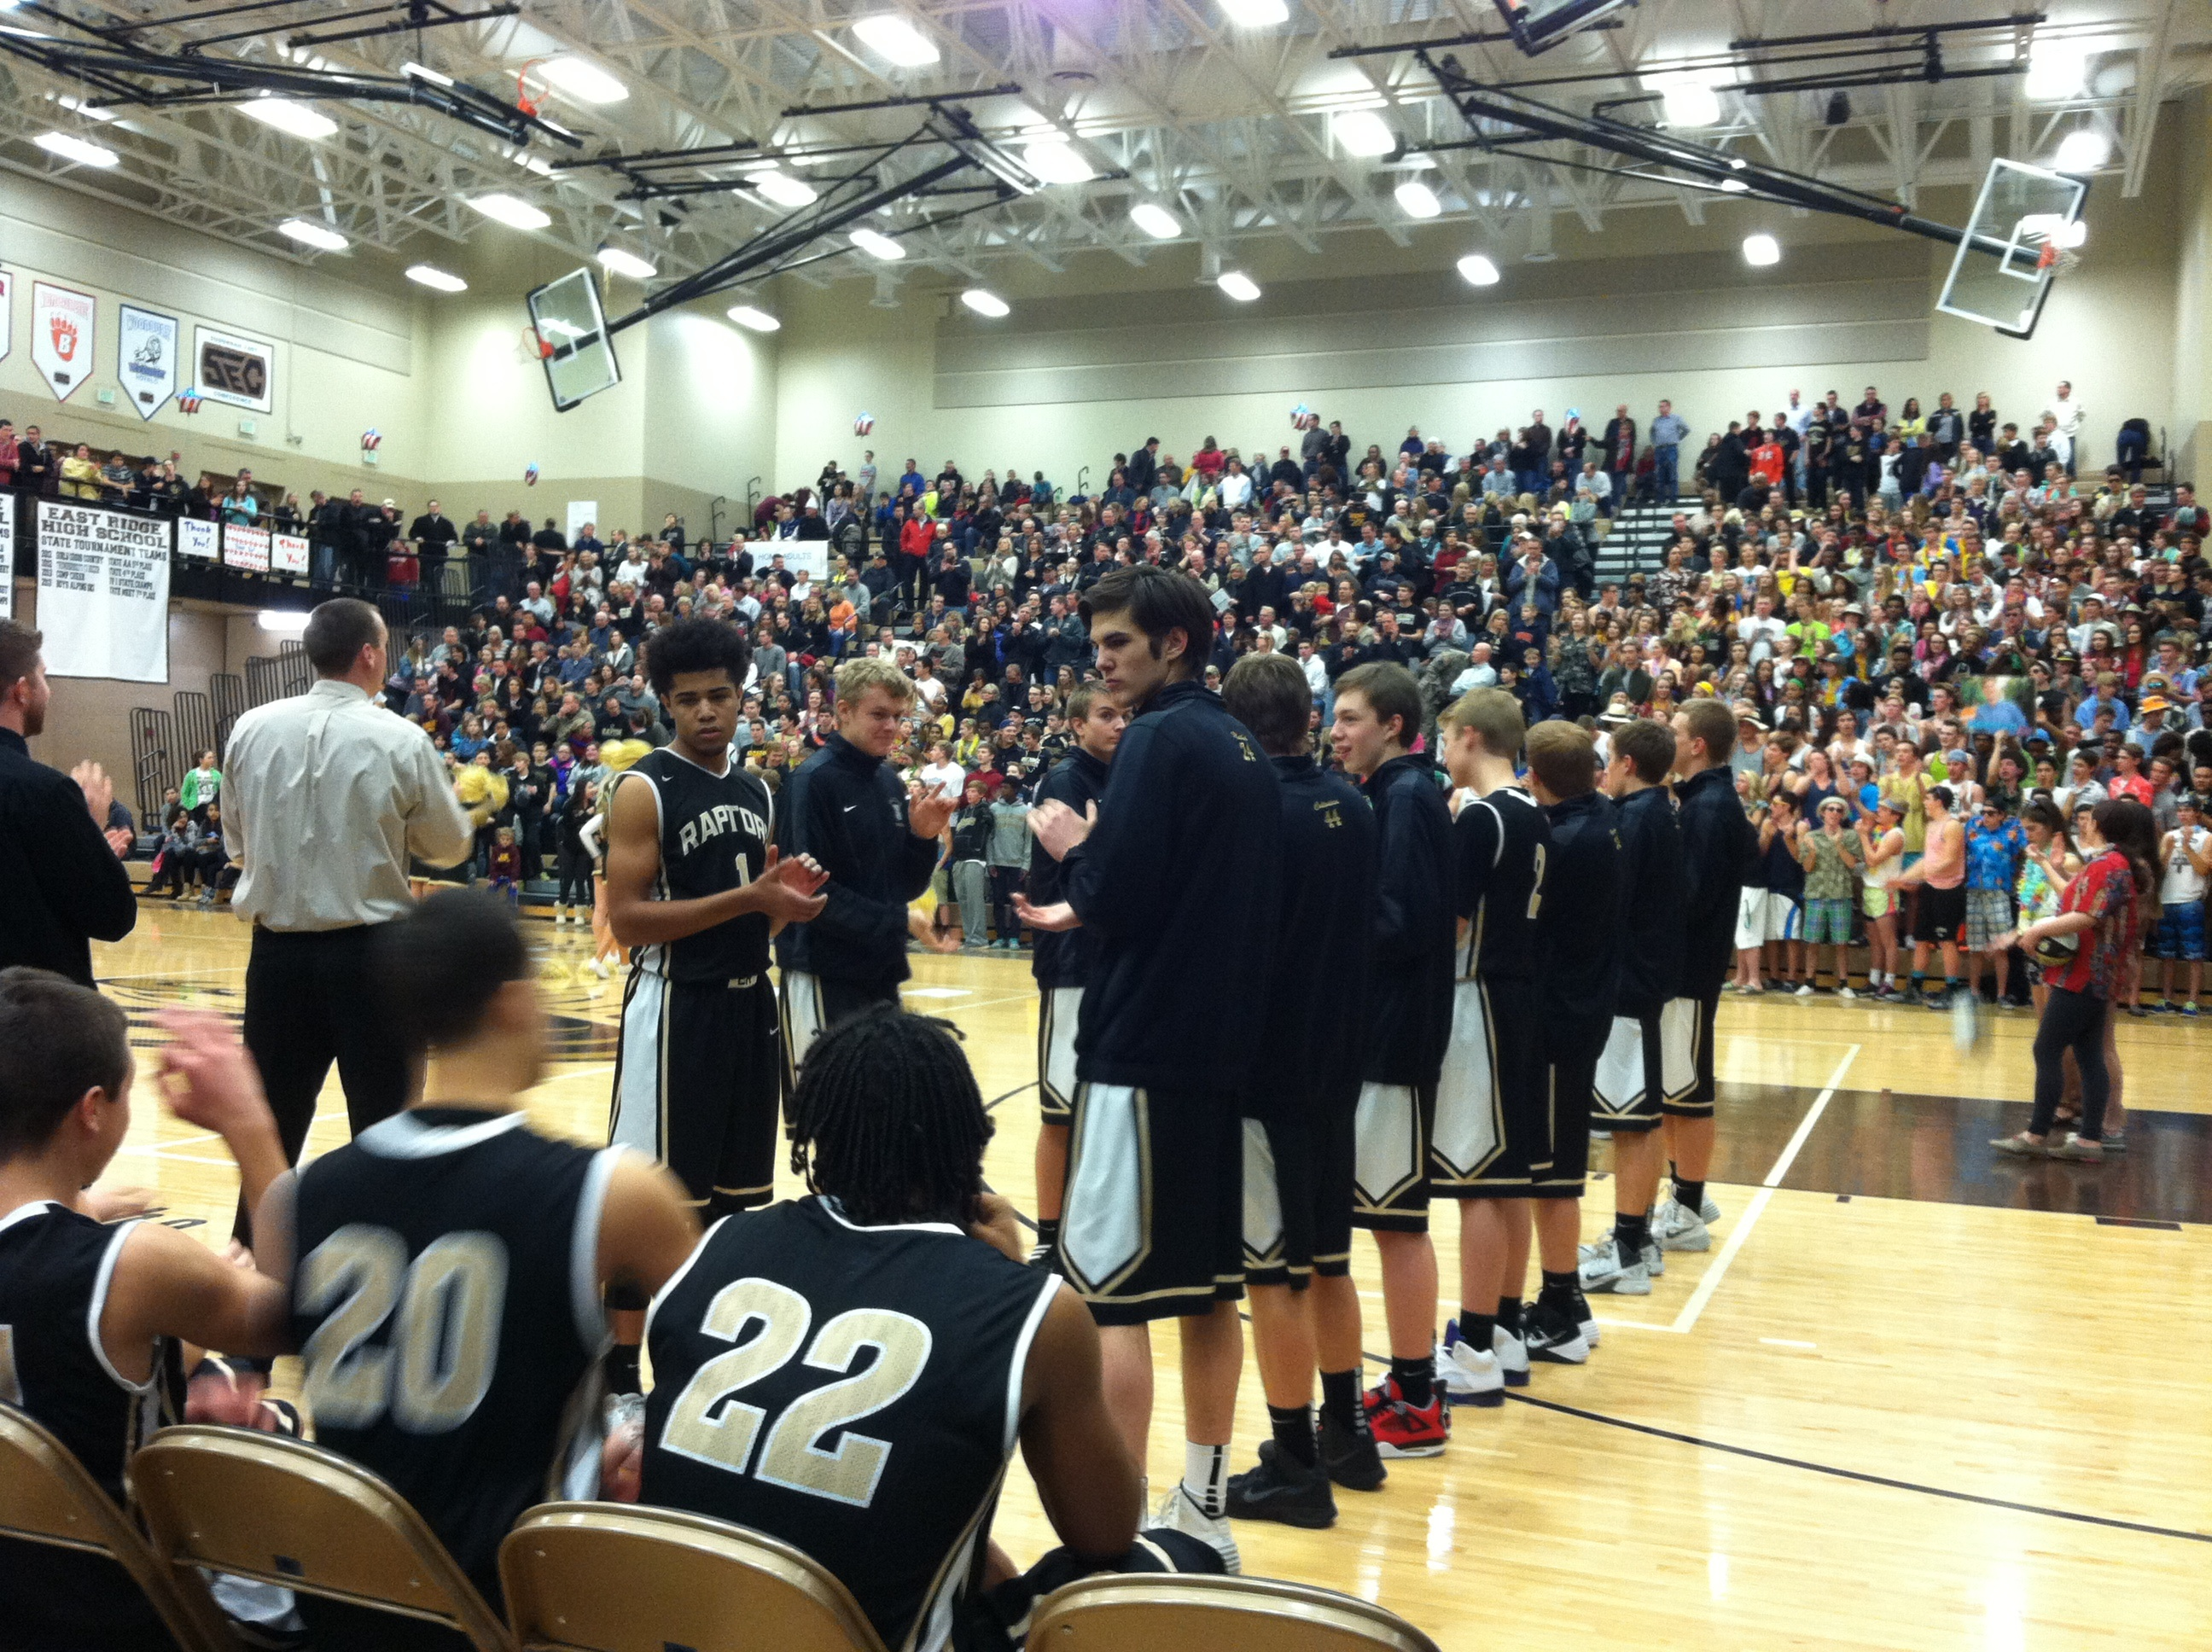 East Ridge high school basketball game - OSI Physical Therapy